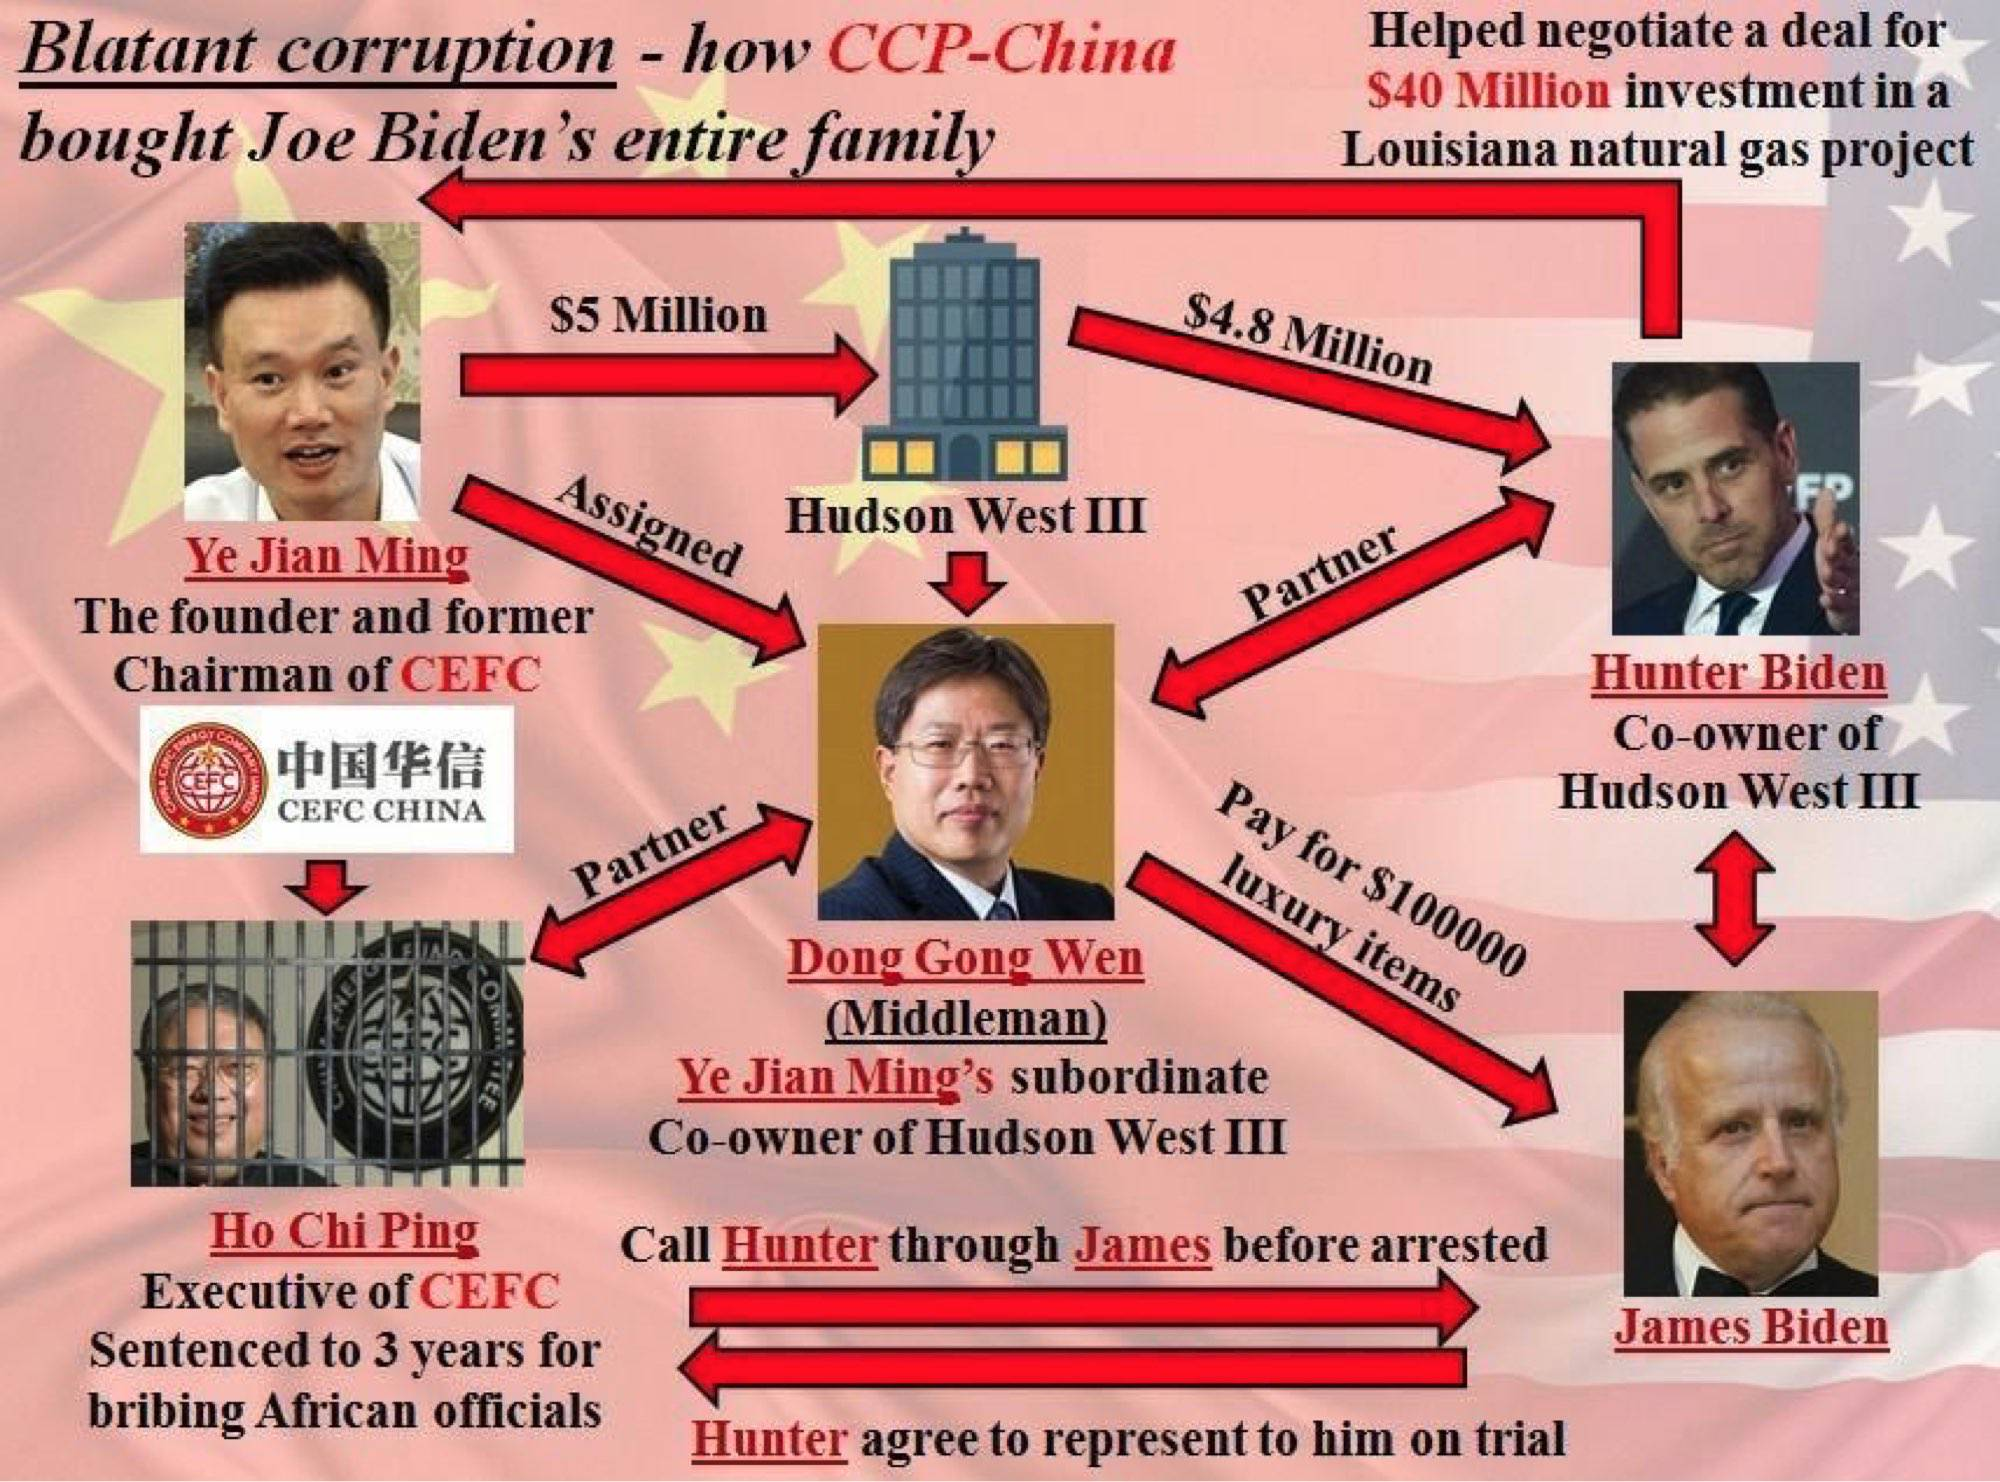 I wonder if this detailed diagram was prepared by the FBI to show Biden connections to China?